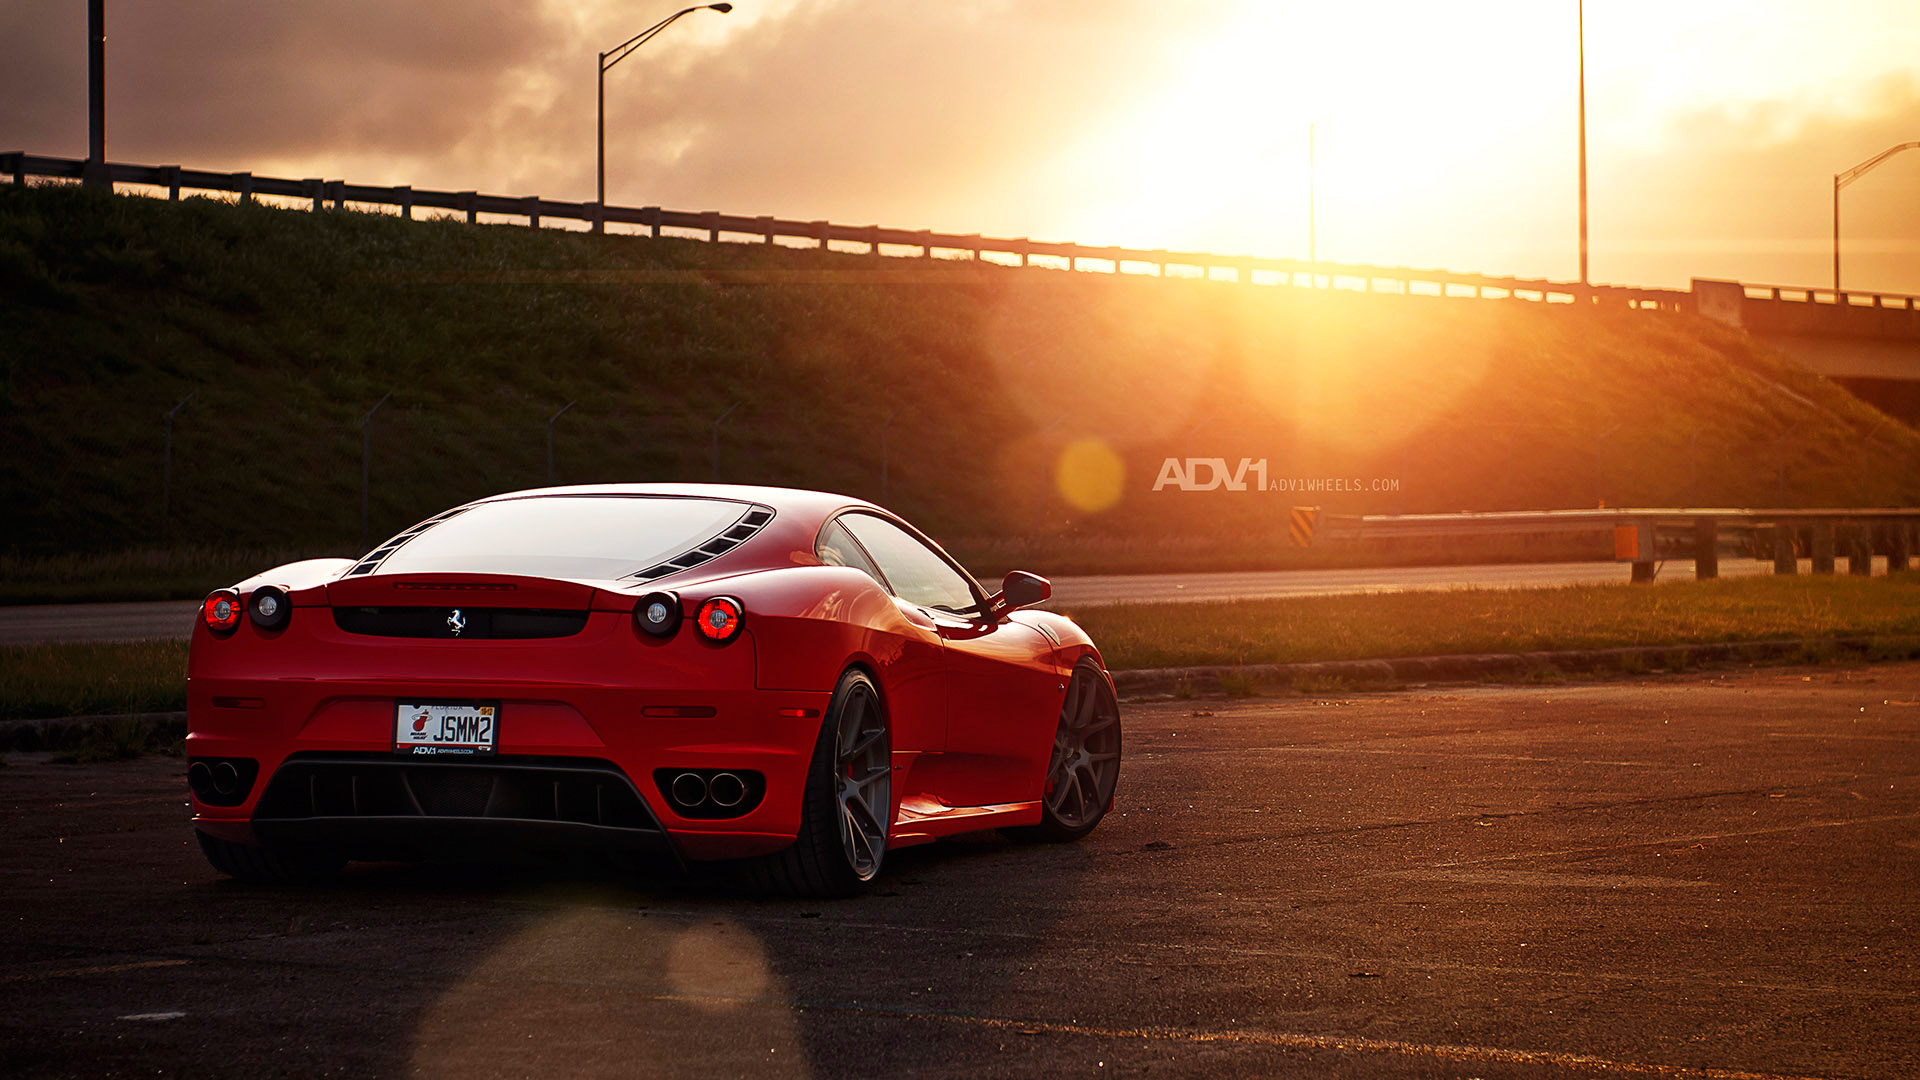 42 hd ferrari wallpapers for free download